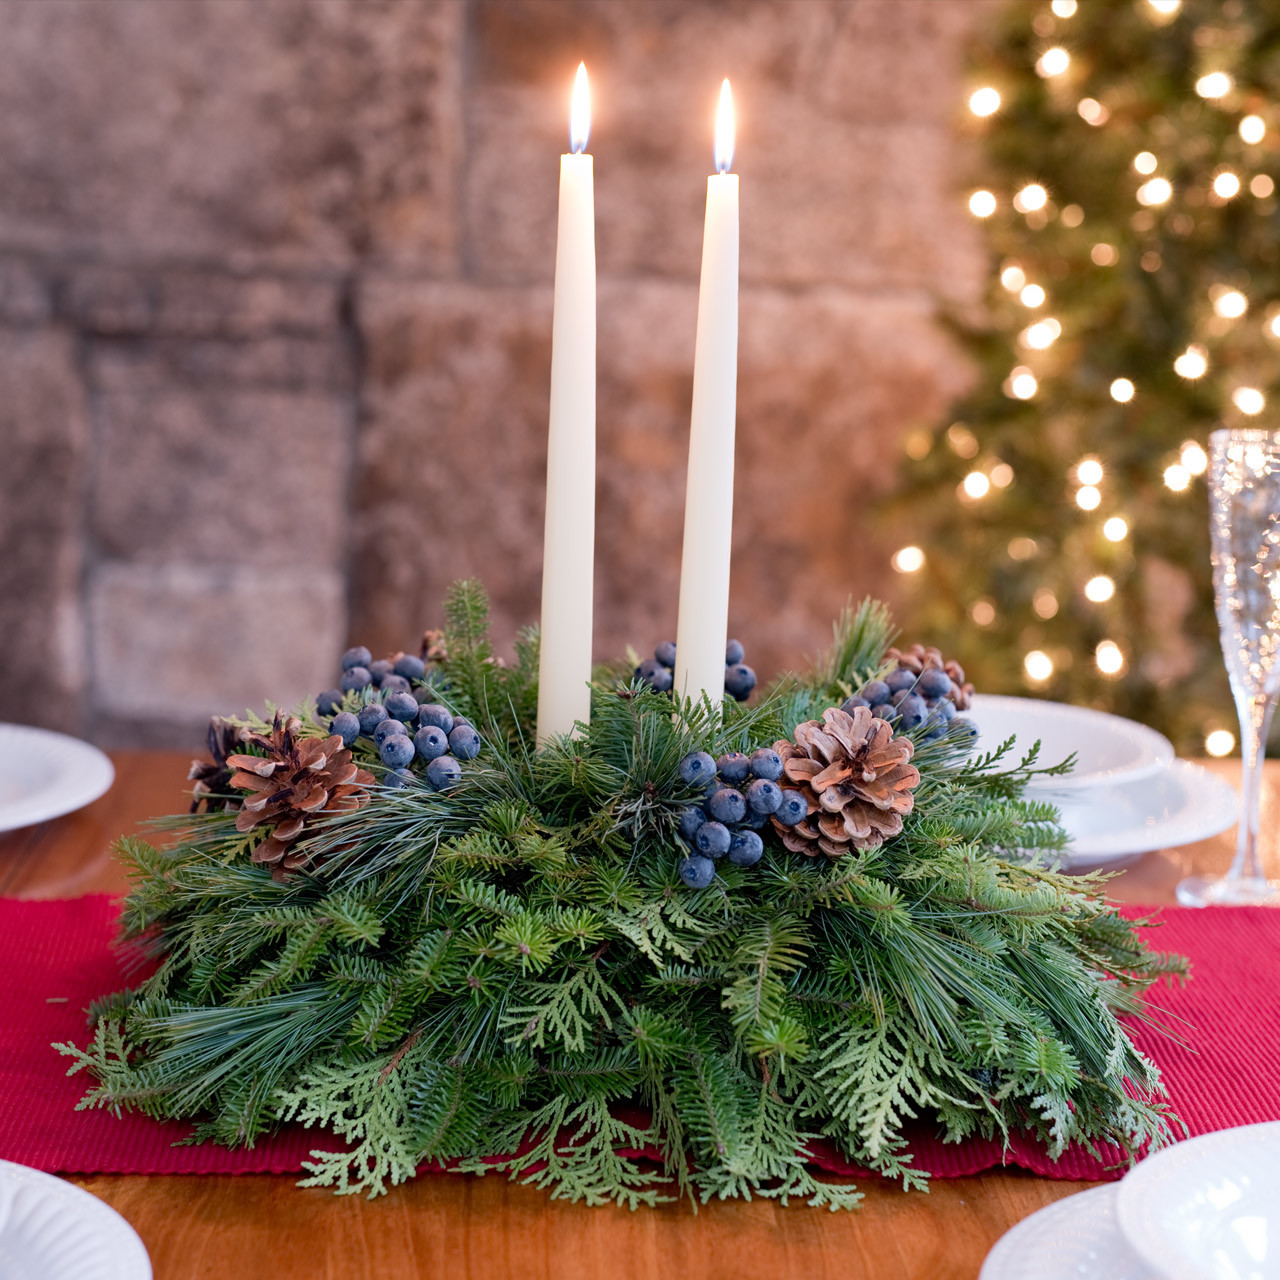 Blueberry Holiday Centerpiece